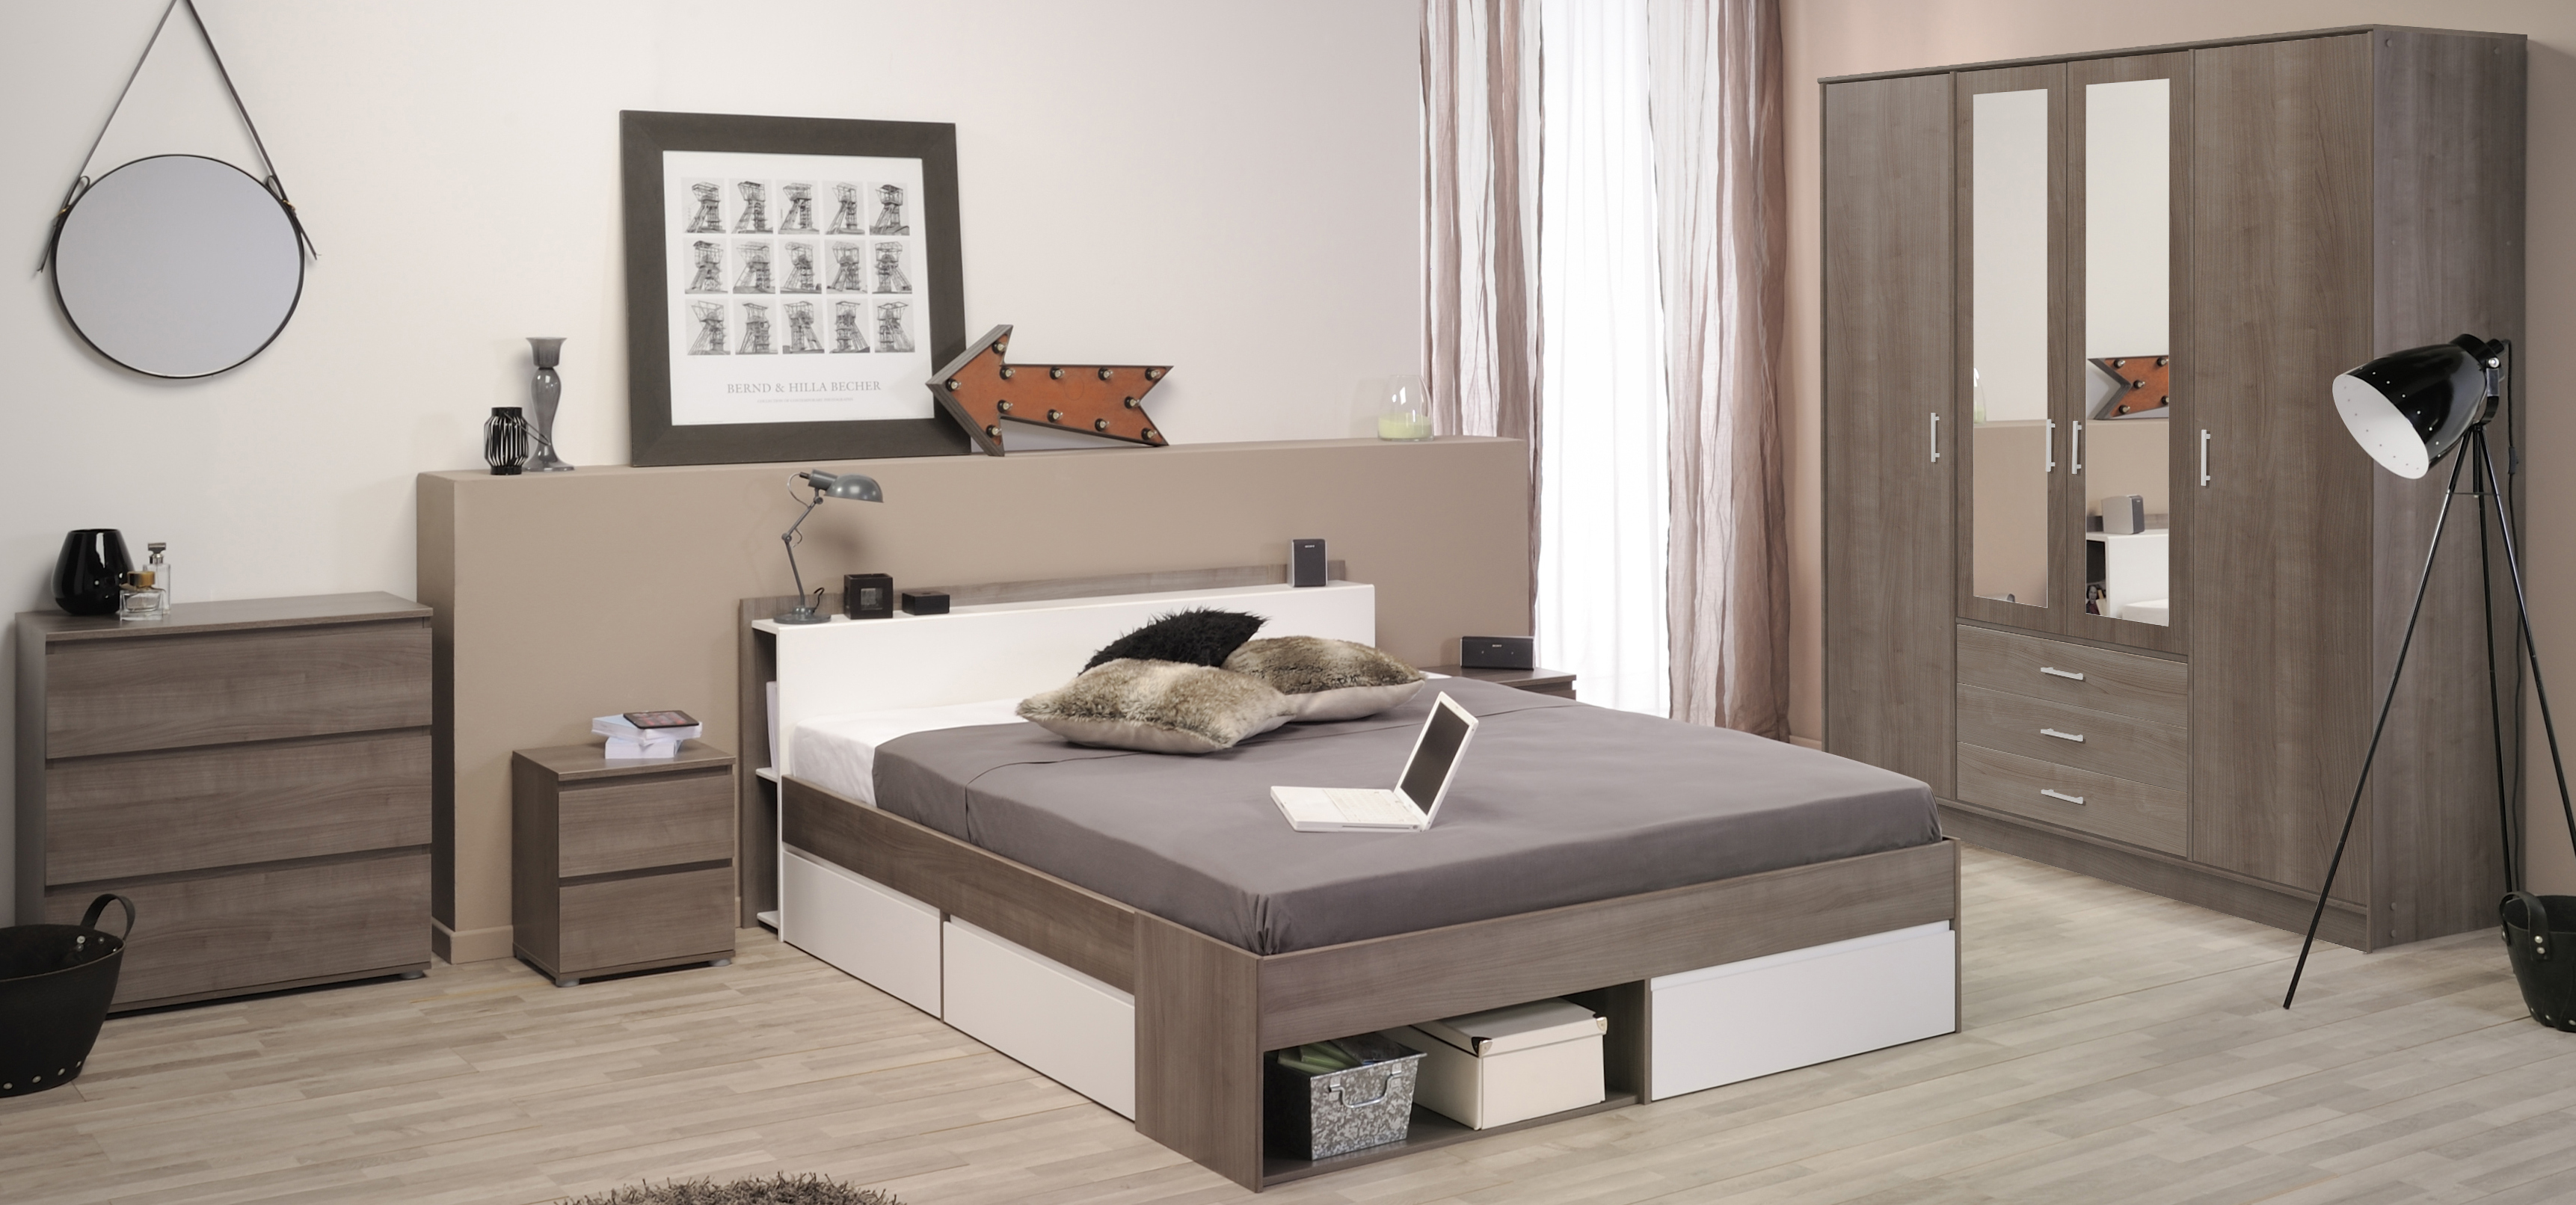 schlafzimmer 5 tlg inkl 140x200 bett u 4 trg kleiderderschrank most 41 von parisot eiche silber. Black Bedroom Furniture Sets. Home Design Ideas